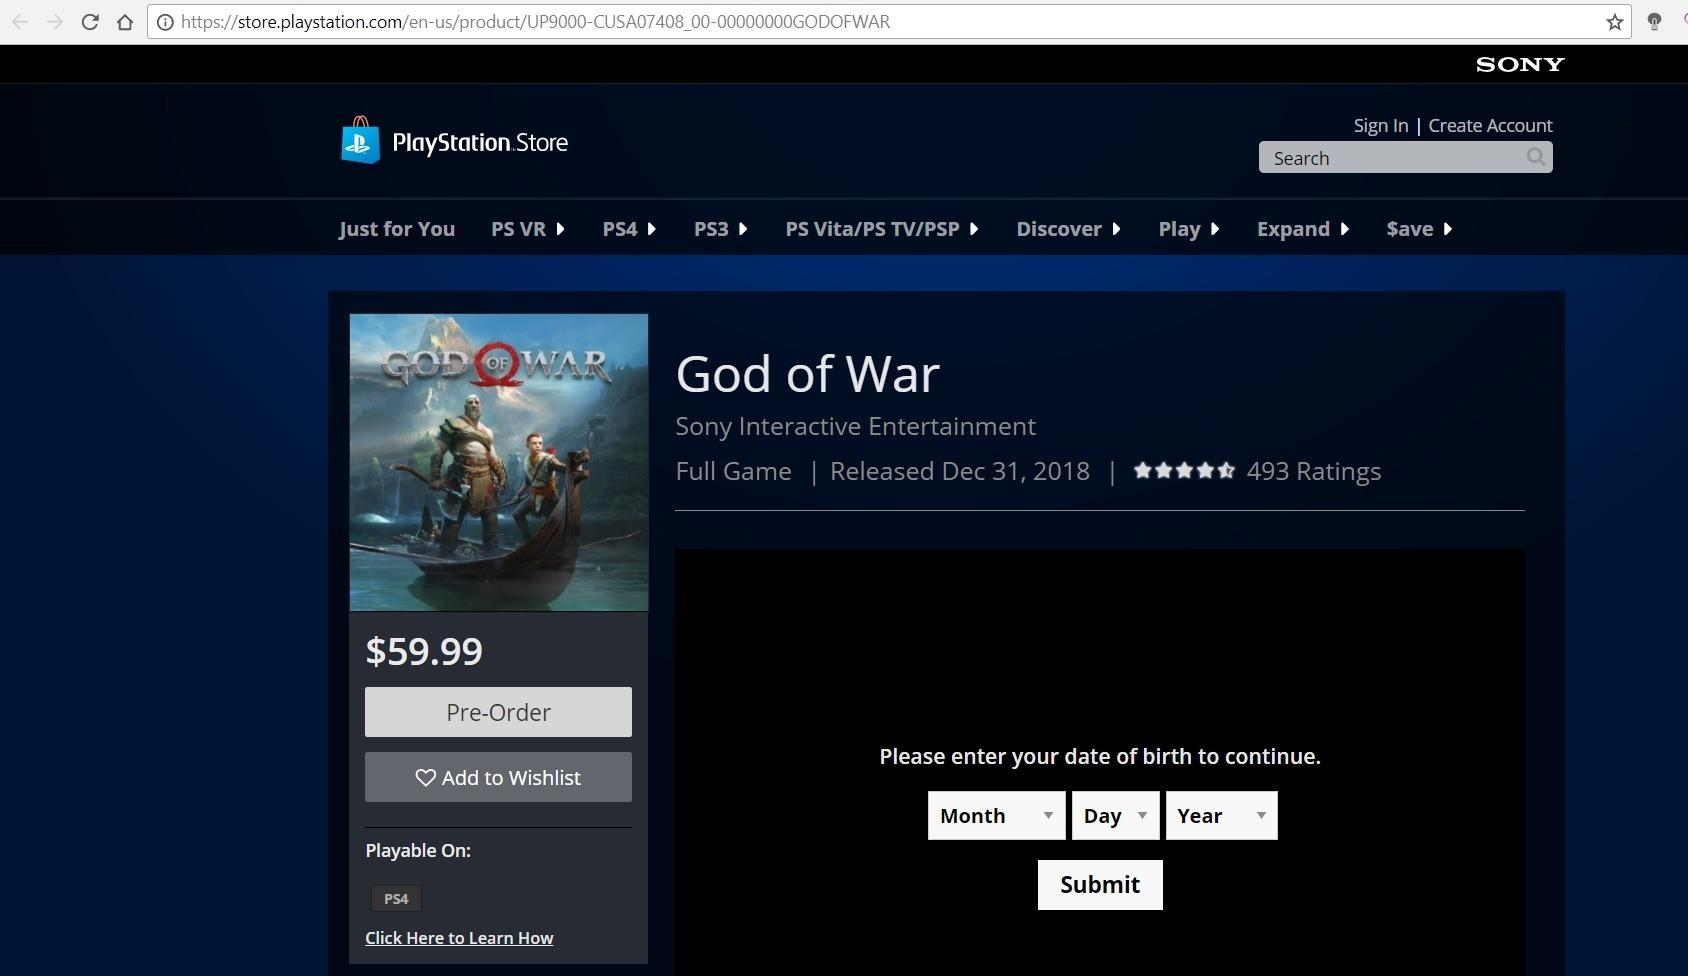 God of War Play Station store leaks